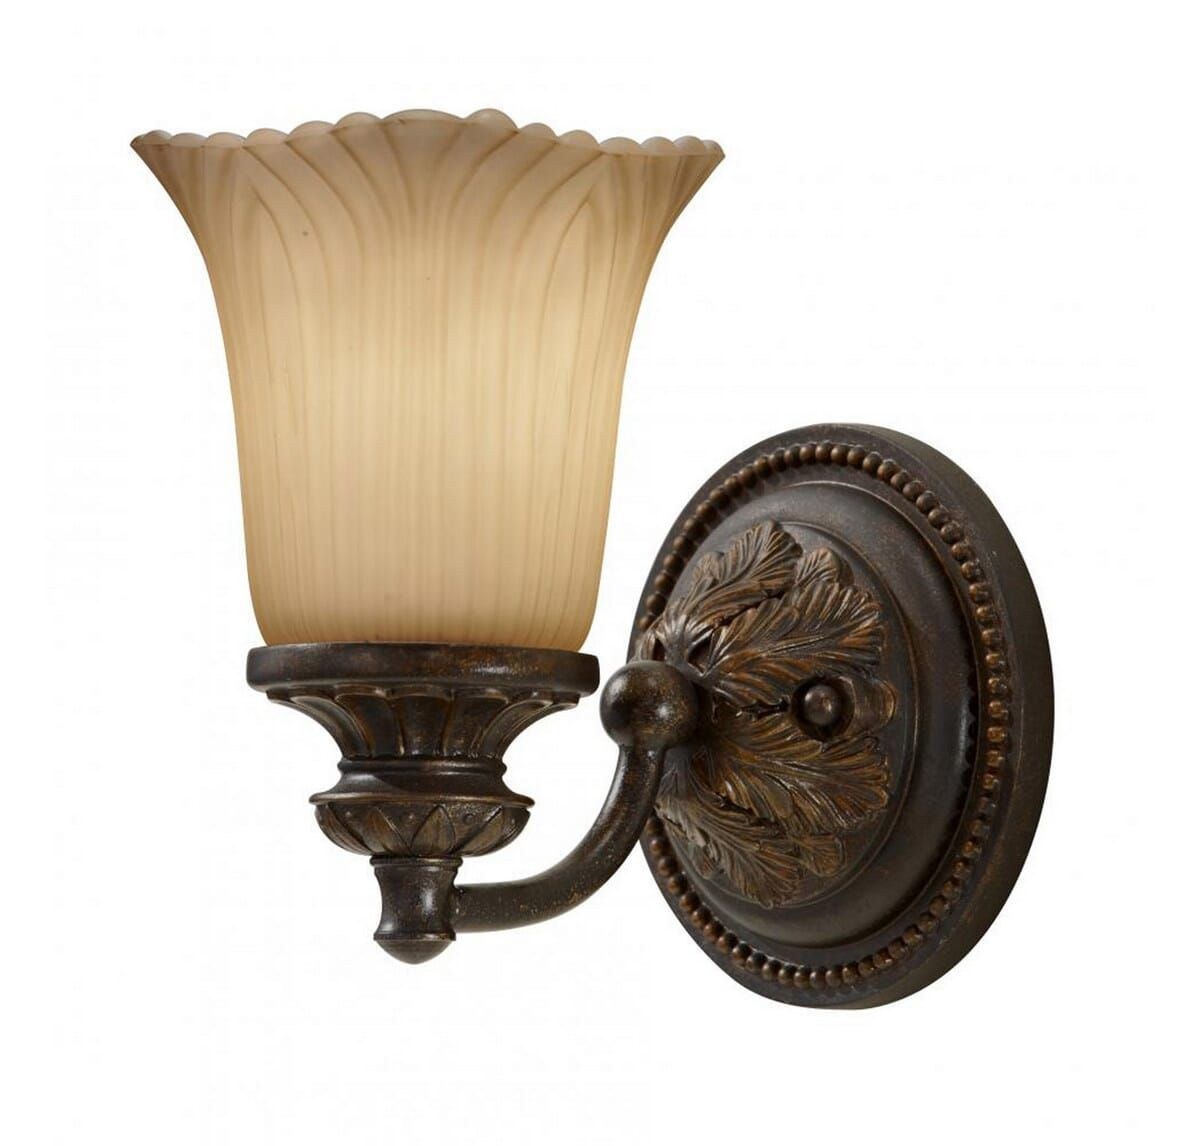 Emma Bathroom Vanity Light By Feiss In 2021 Bathroom Wall Sconces Bronze Wall Sconce Lighting